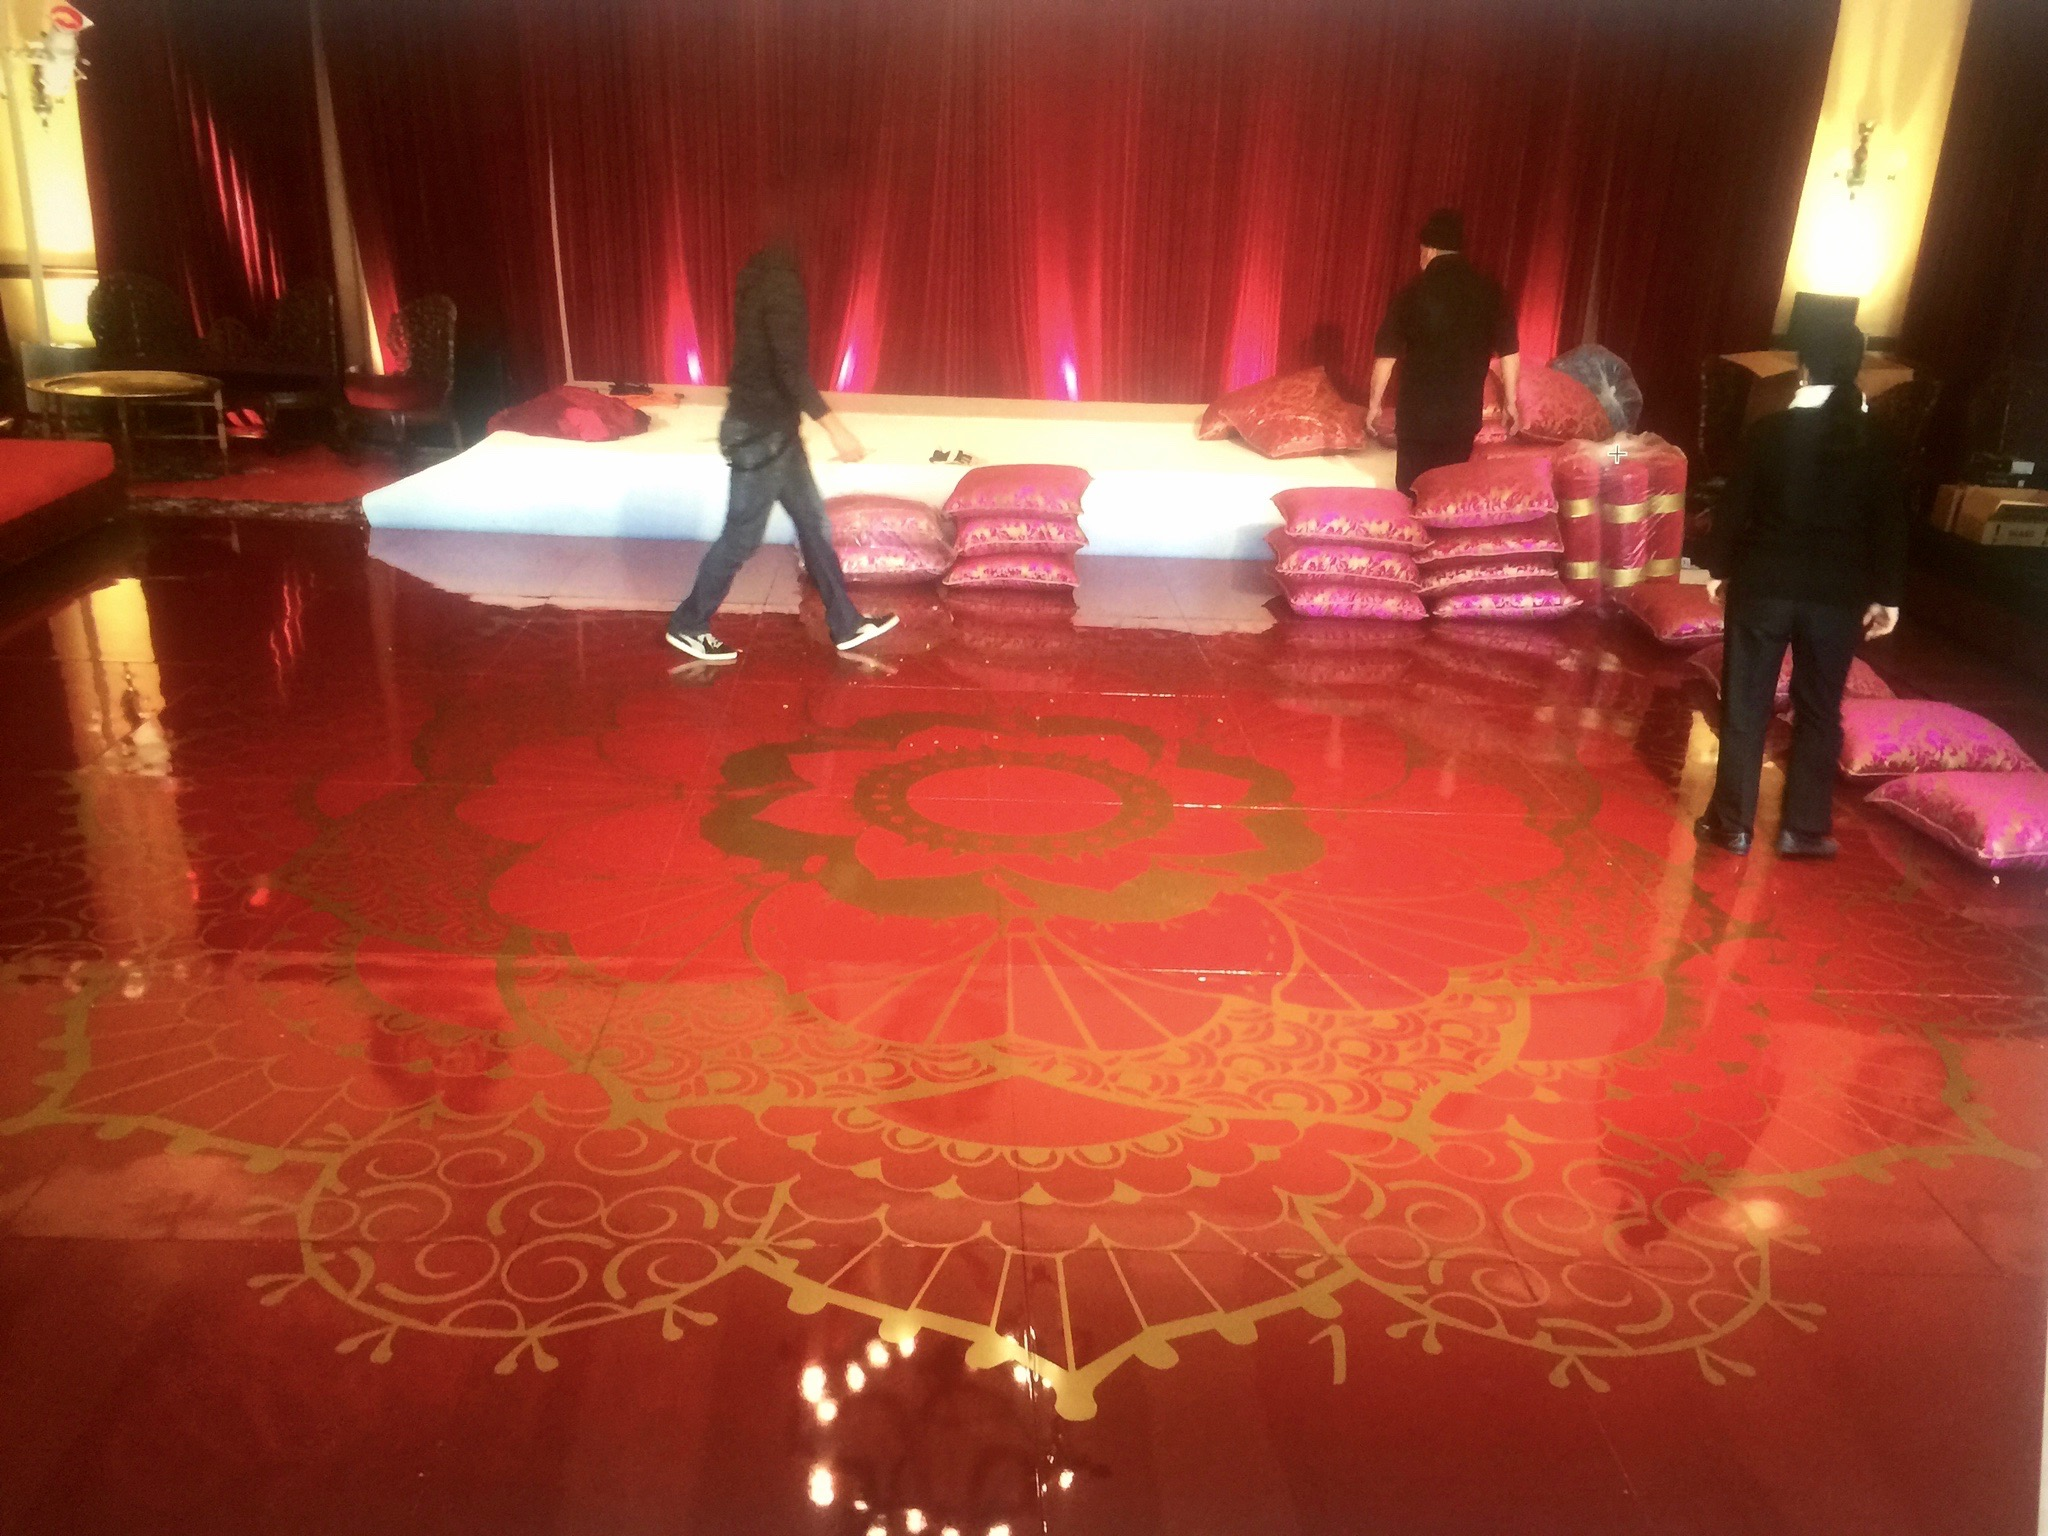 Red Seamless Dance Floor w/ Decal